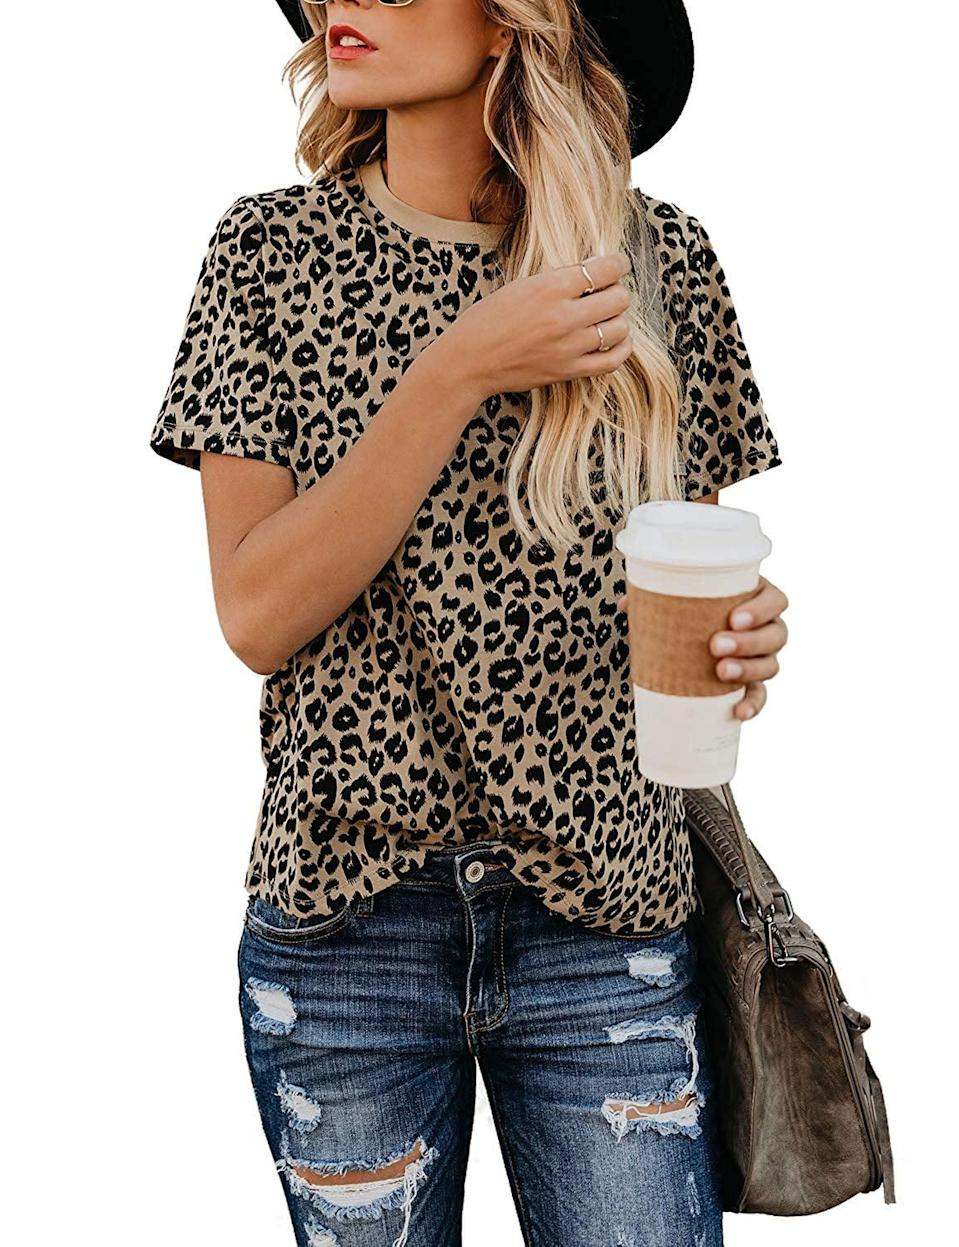 <p>For casual days, throw on this <span>BMJL Leopard Short-Sleeved Shirt</span> ($17).</p>